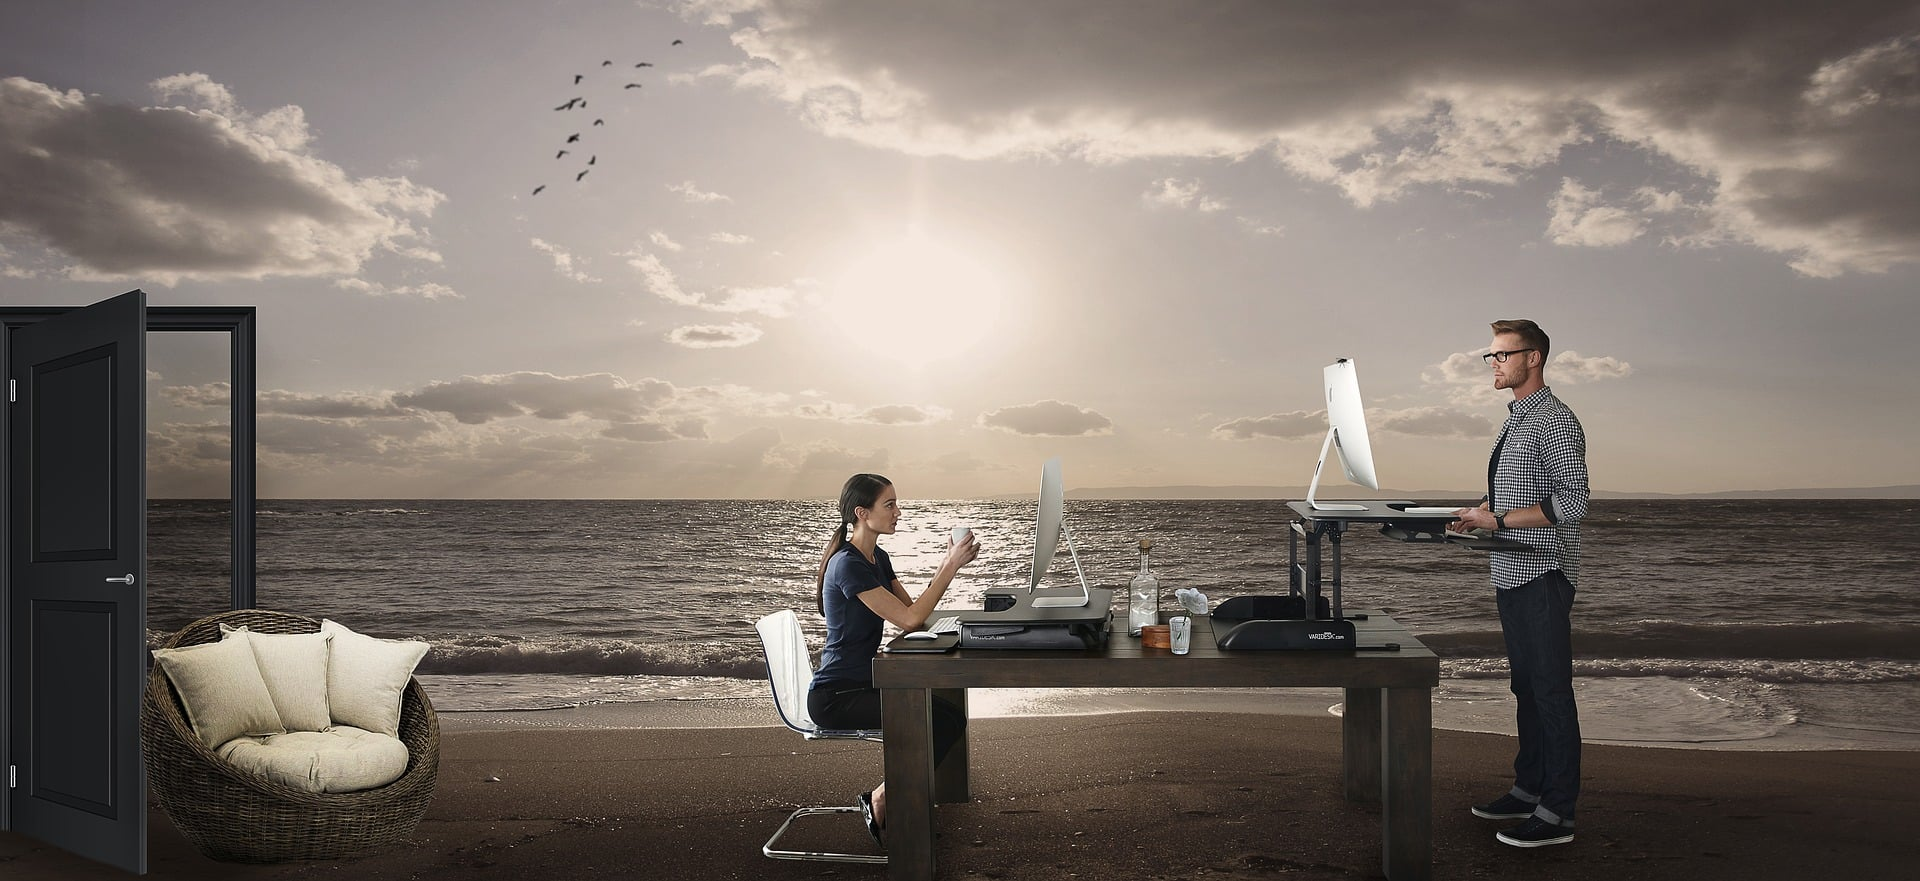 Enjoy the work while taking a sun bathe at beach instead at your boring home desk.